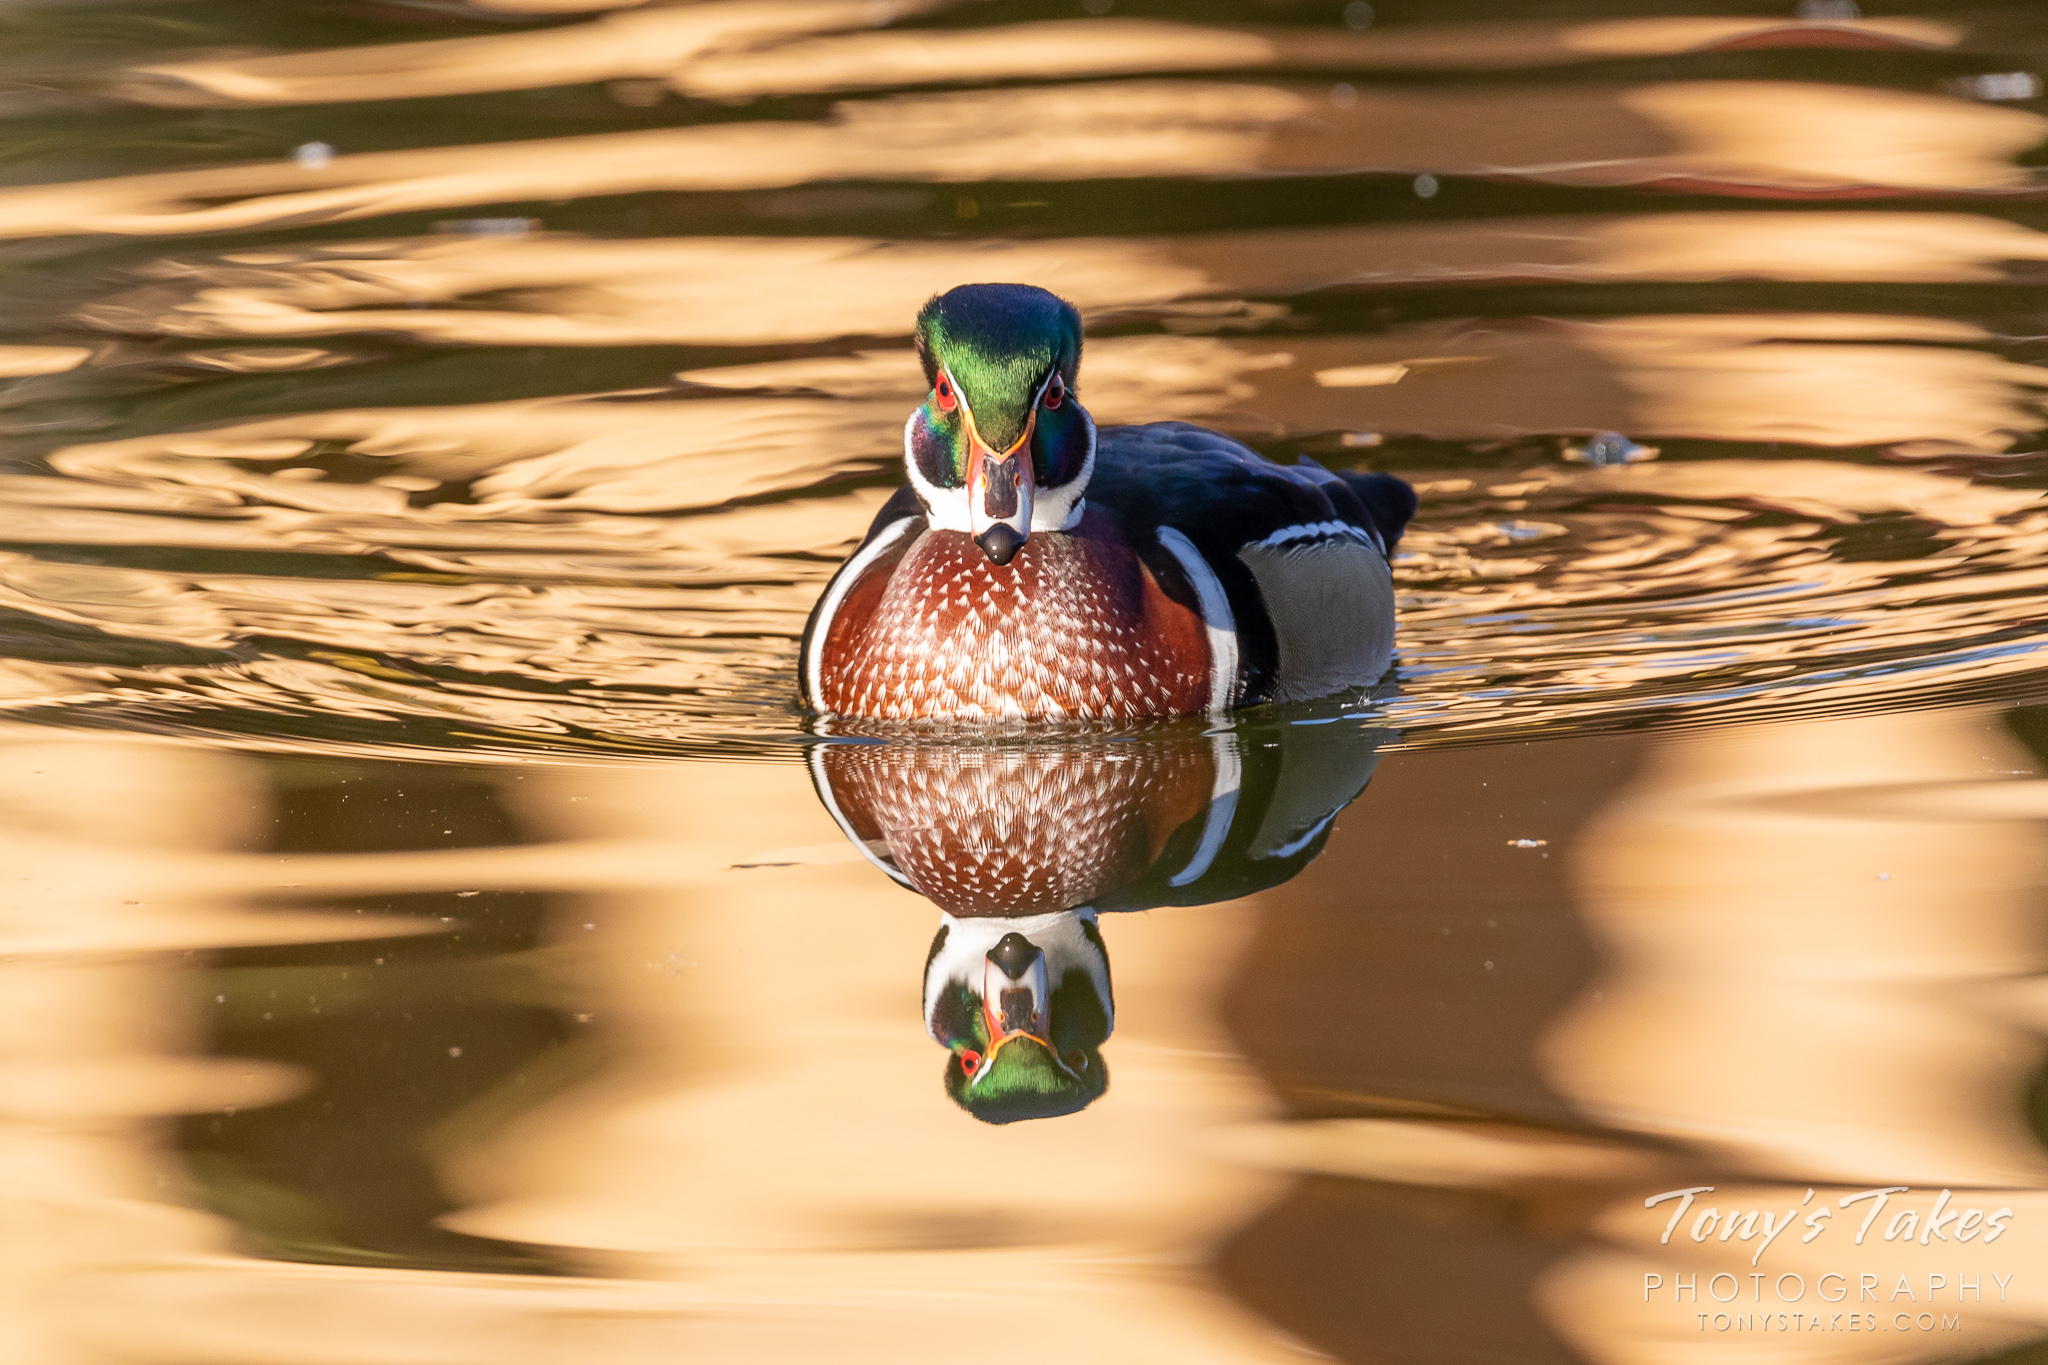 A wood duck drake moves across a pond with its reflection and the reflection of fall colors on the water's surface. (© Tony's Takes)